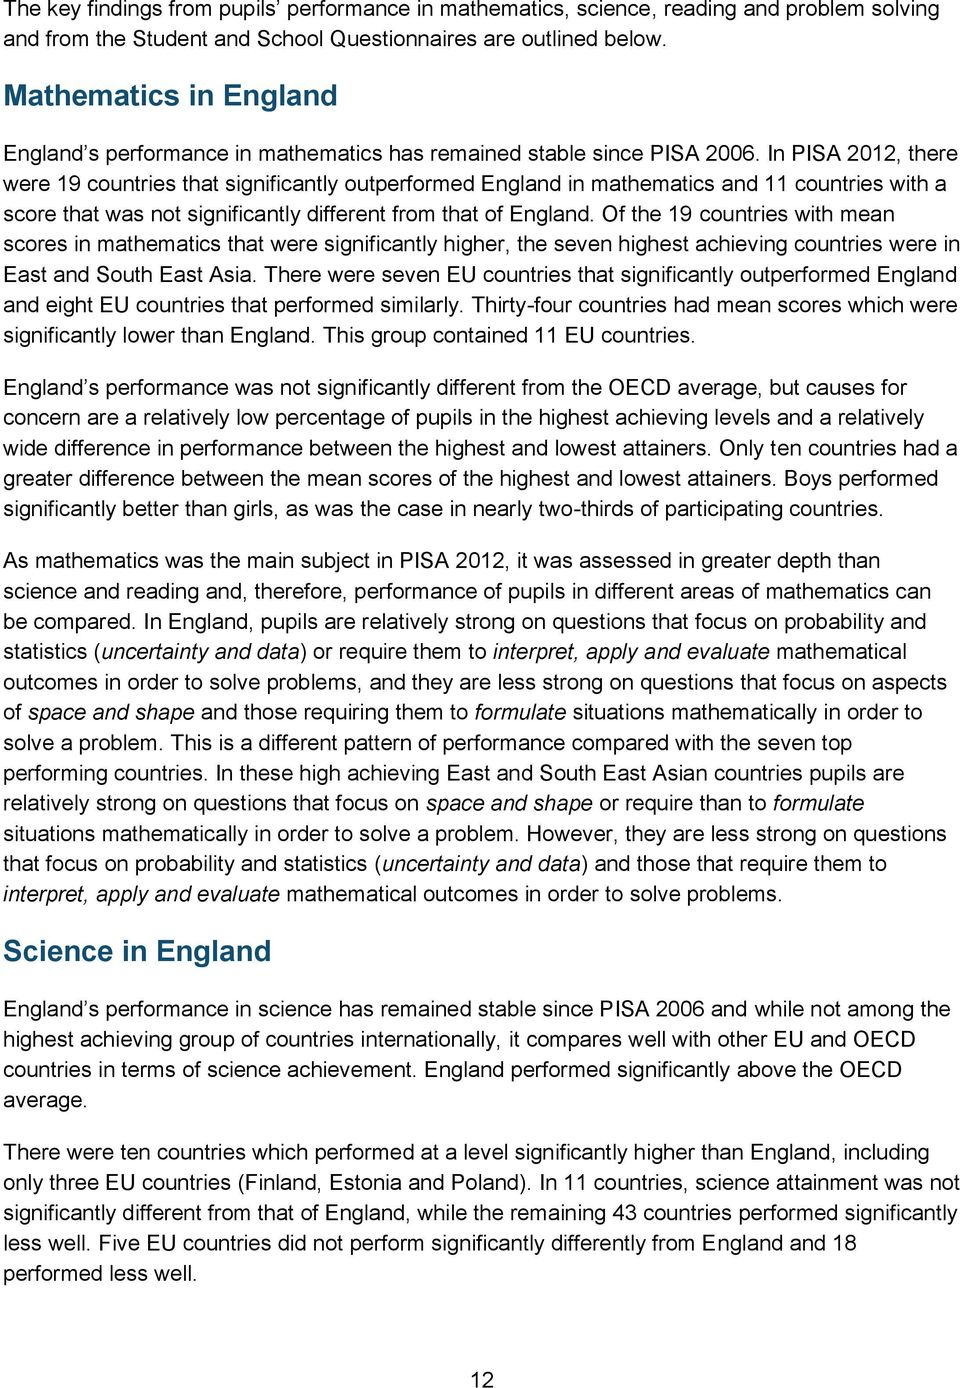 In PISA 2012, there were 19 countries that significantly outperformed England in mathematics and 11 countries with a score that was not significantly different from that of England.